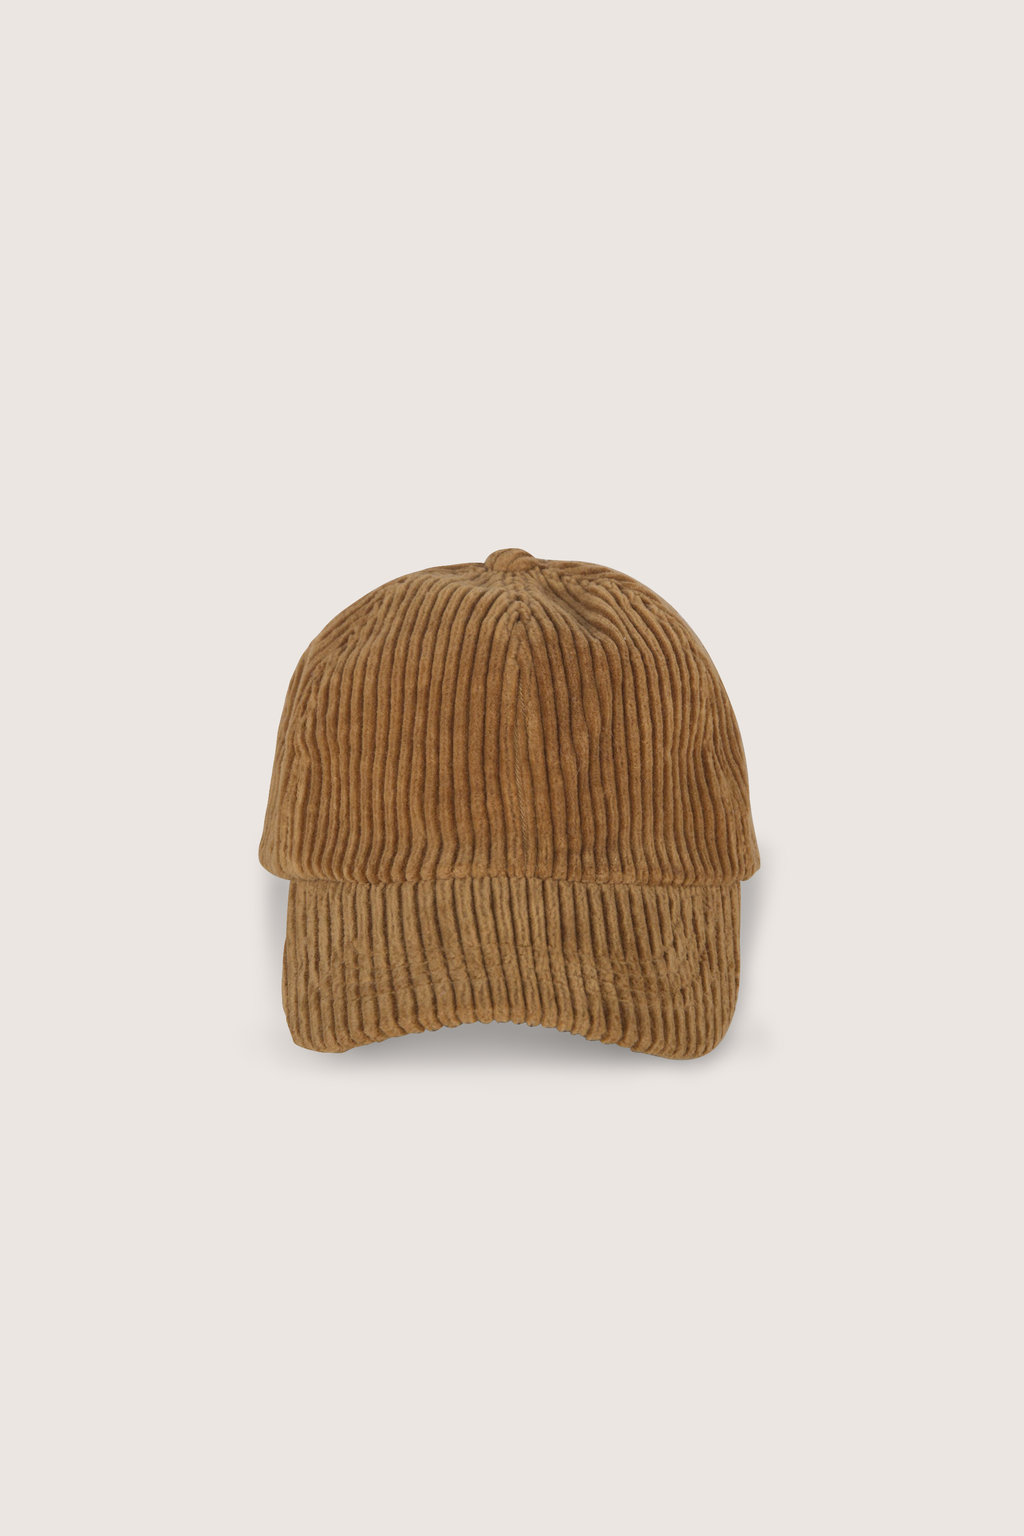 Hat H018 Brown 2